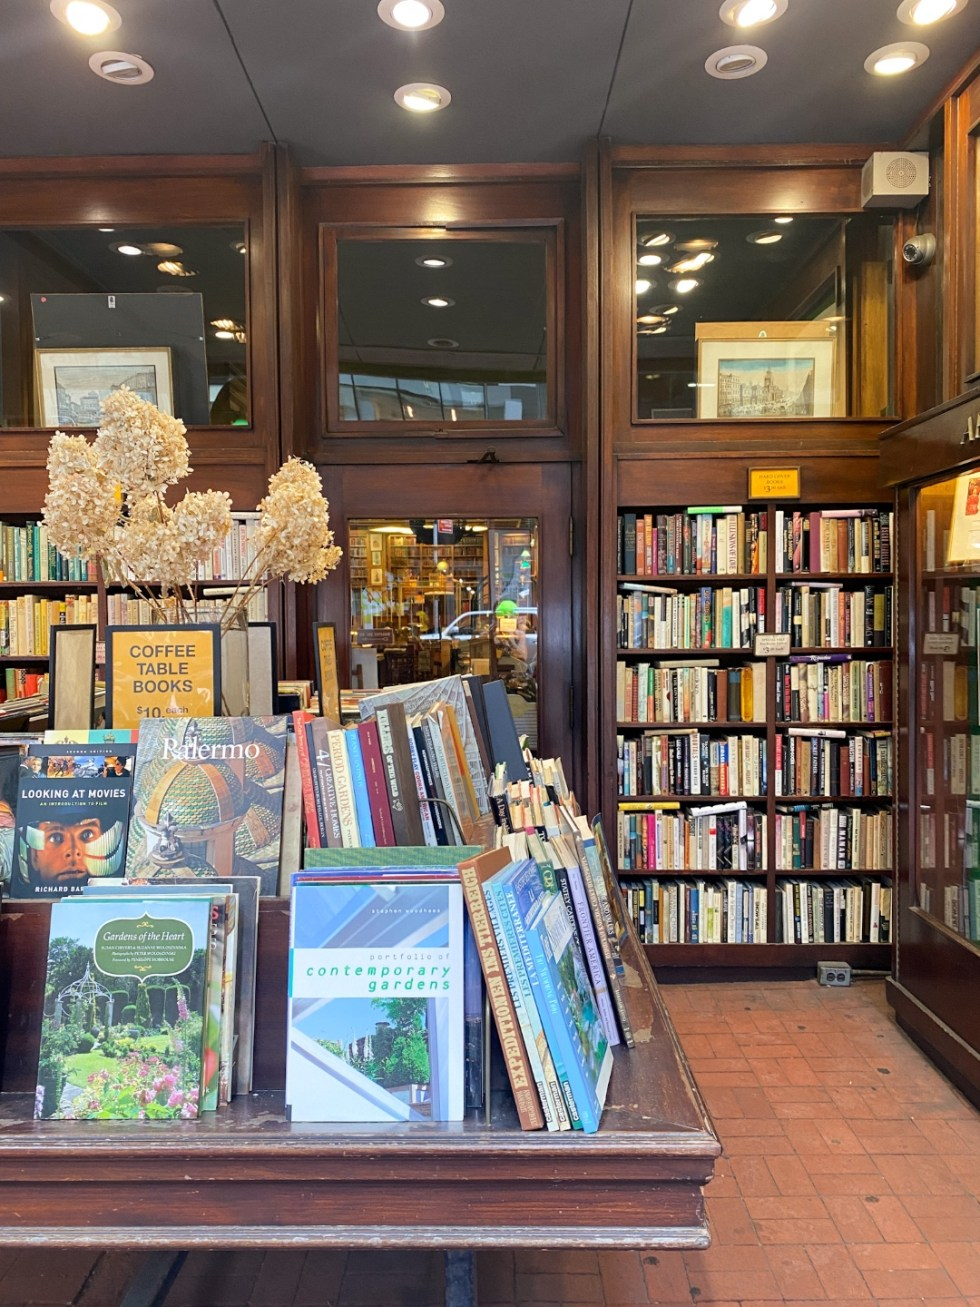 NYC Summer Weekend: Things to Do in NYC in the Summer - I'm Fixin' To - @imfixintoblog   NYC Summer Weekend by popular NC travel blog, I'm Fixin' To: image of a book store.